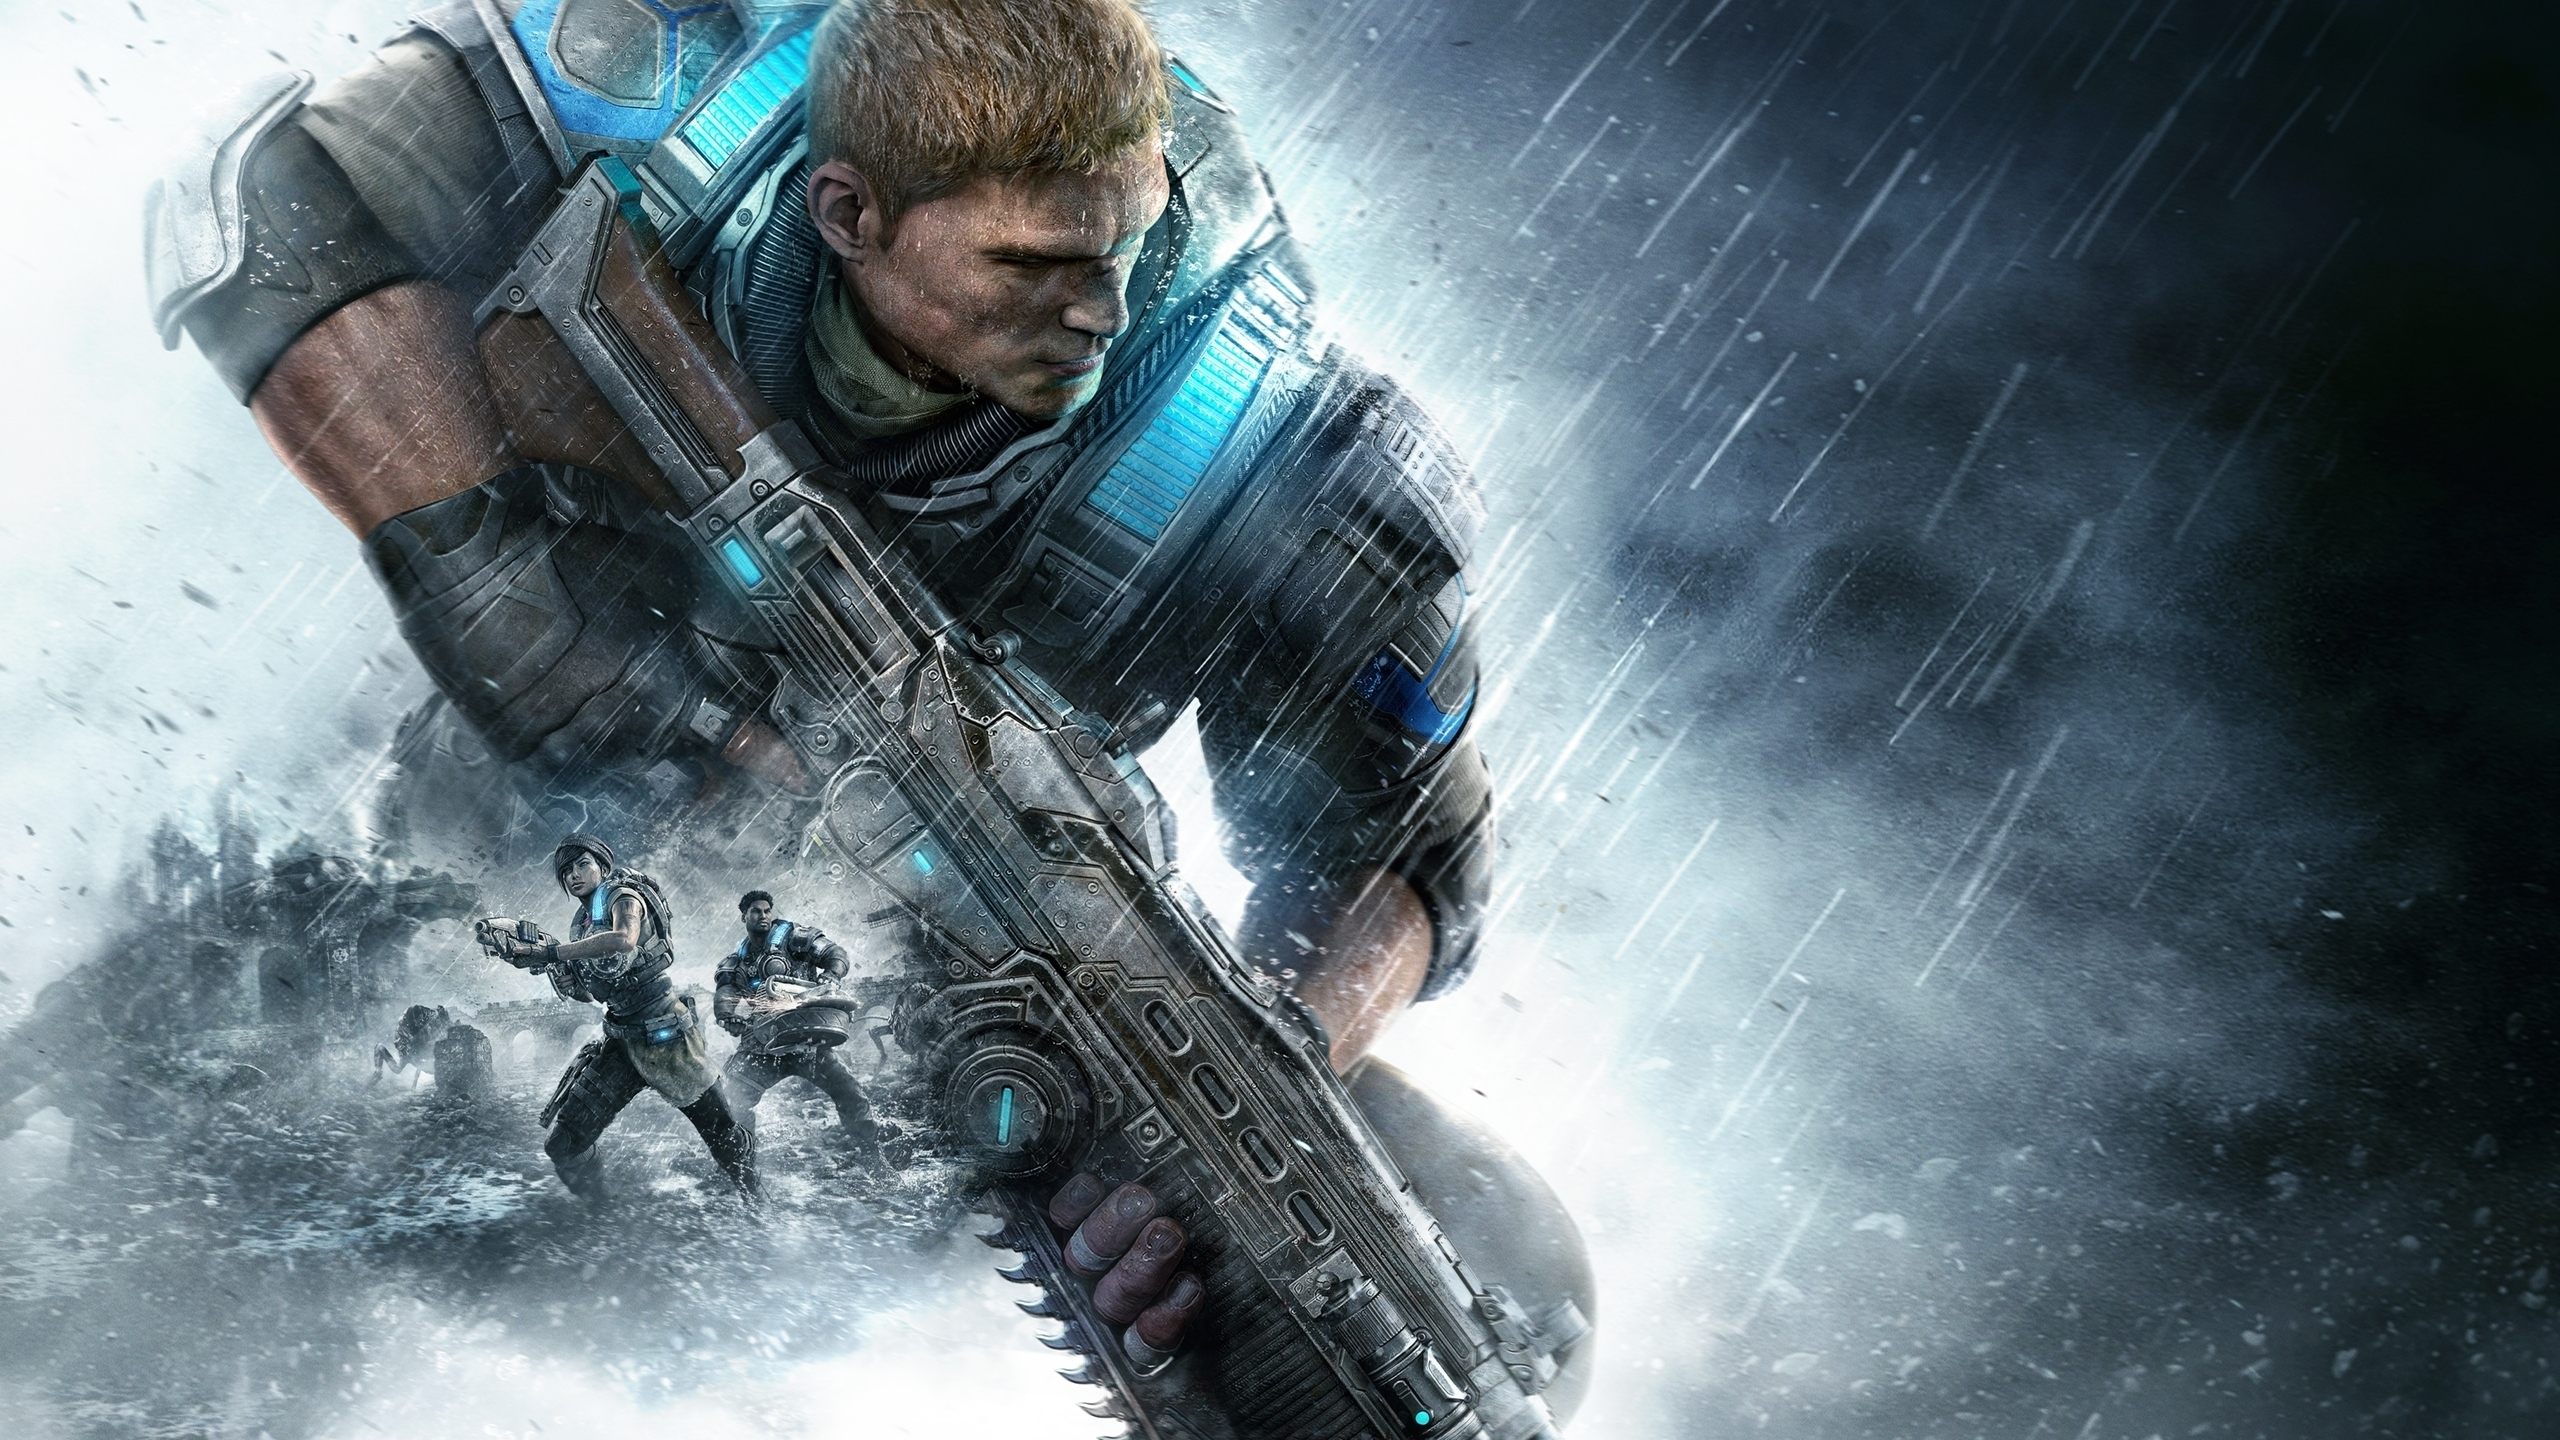 Gears Of War Hd Xbox One Wallpaper